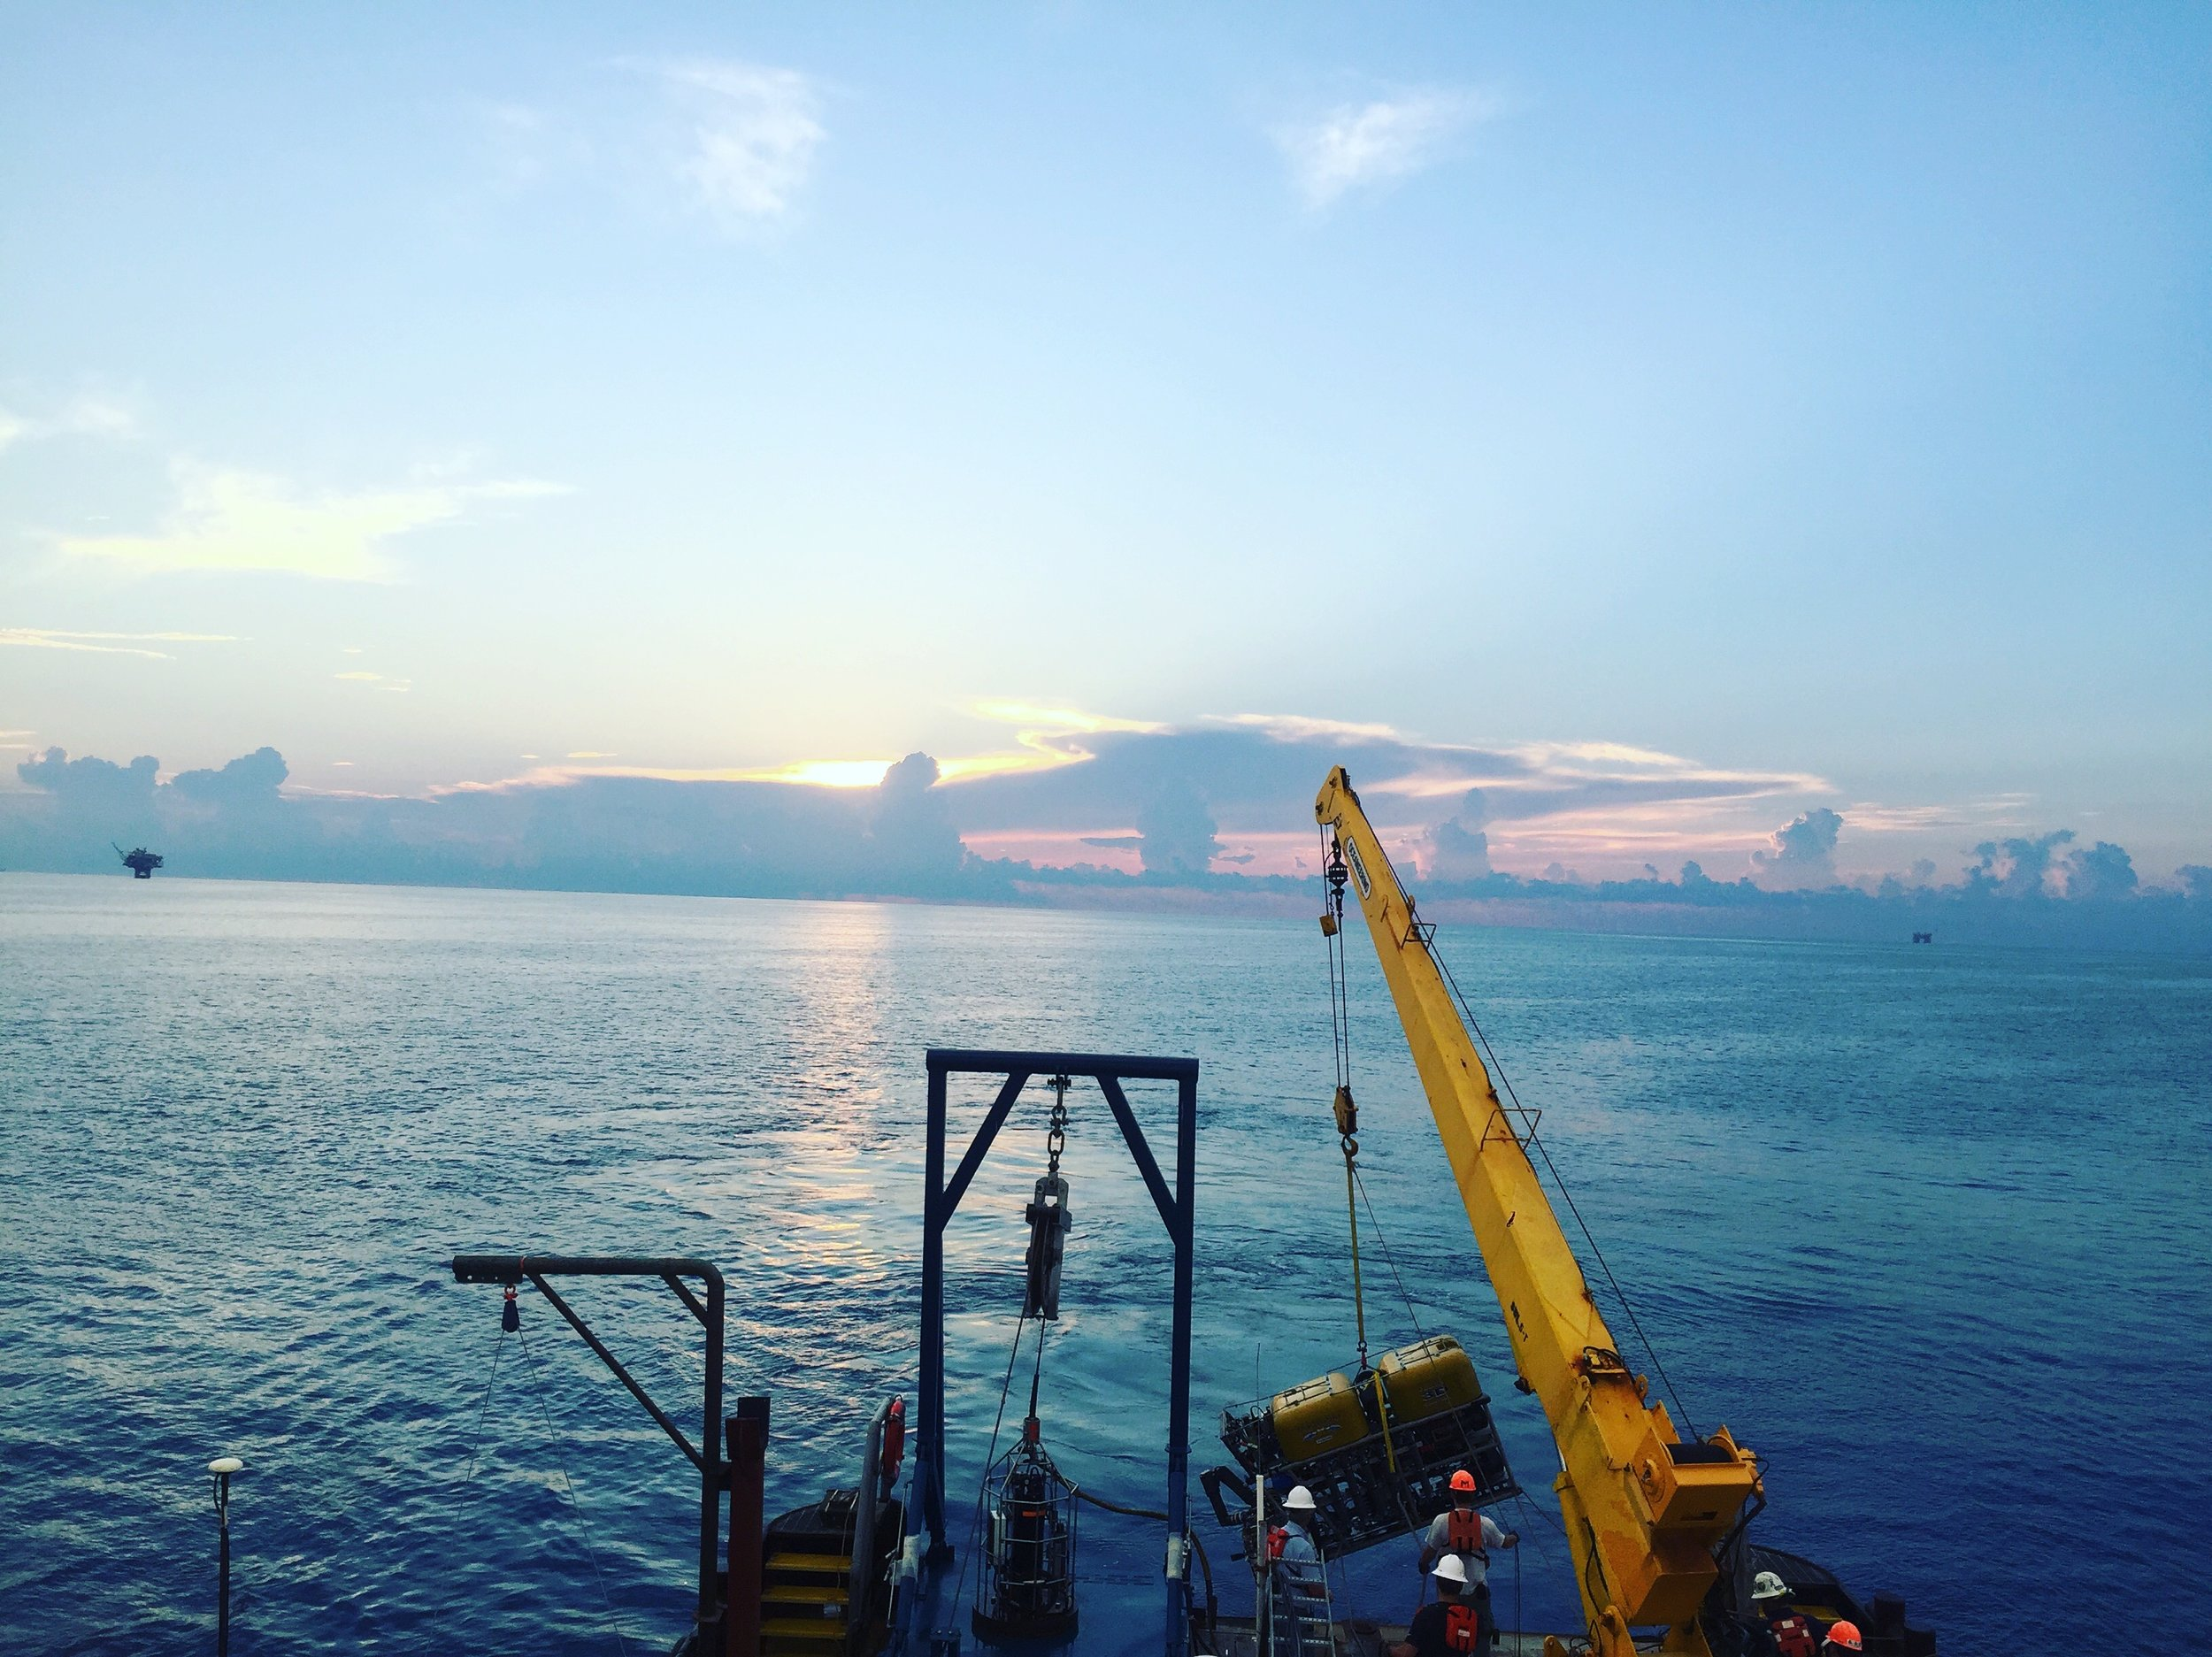 ROV Global Explorer during a sunrise launch